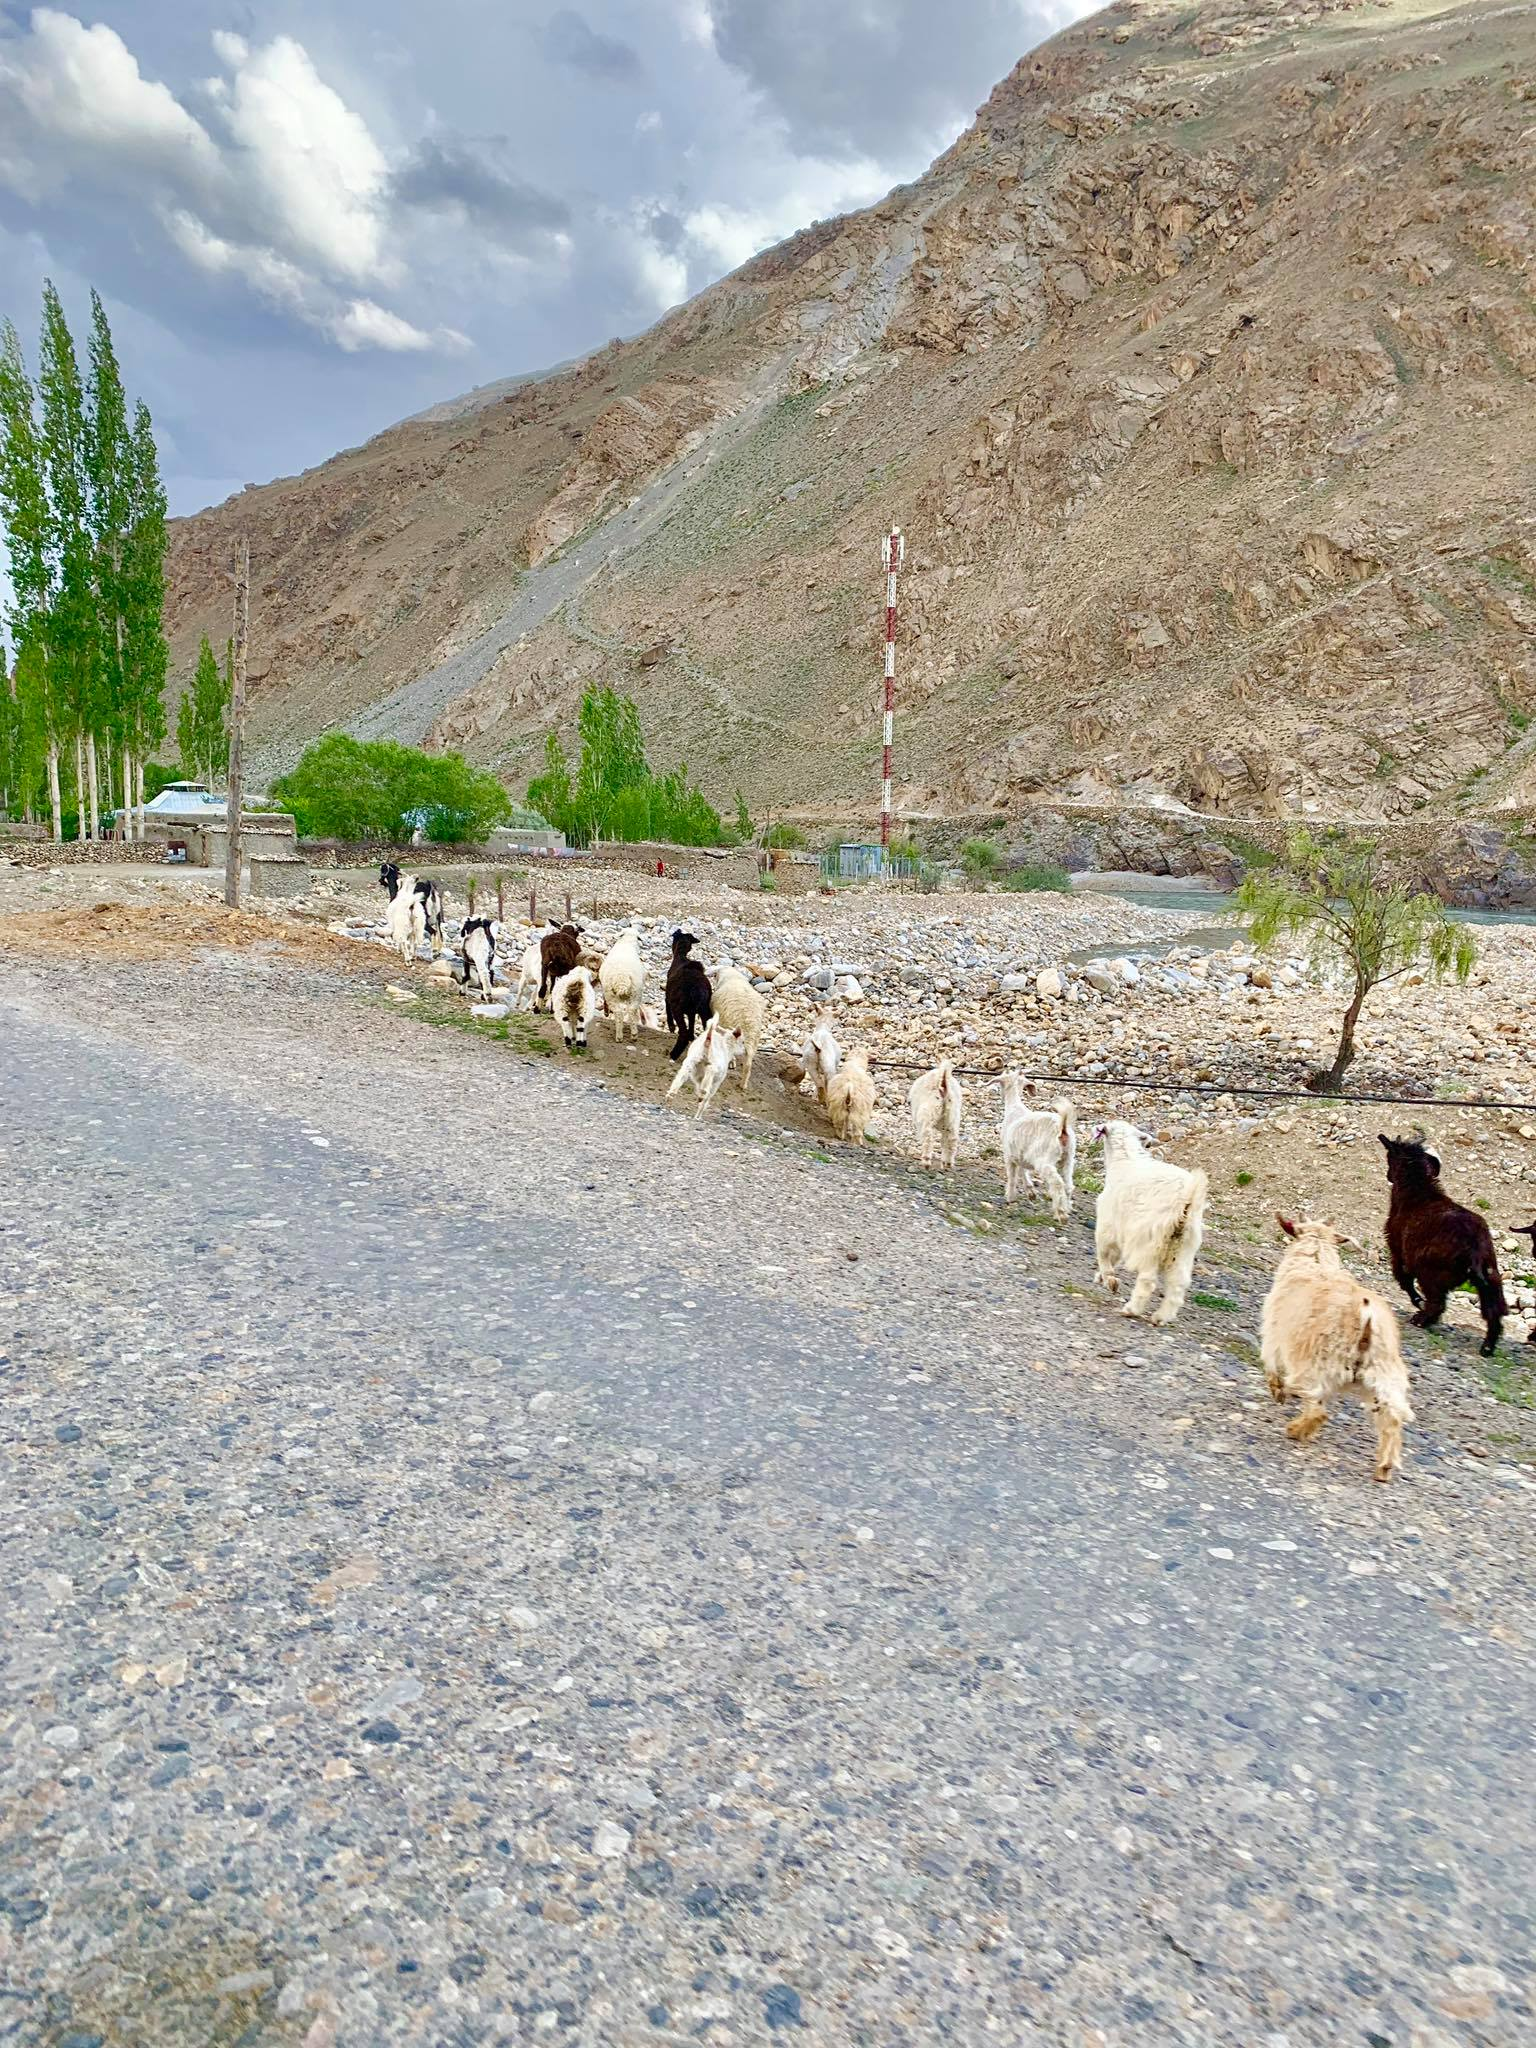 Kach Solo Travels in 2019 Driving from Ishkashim to Wakhan Valley2.jpg